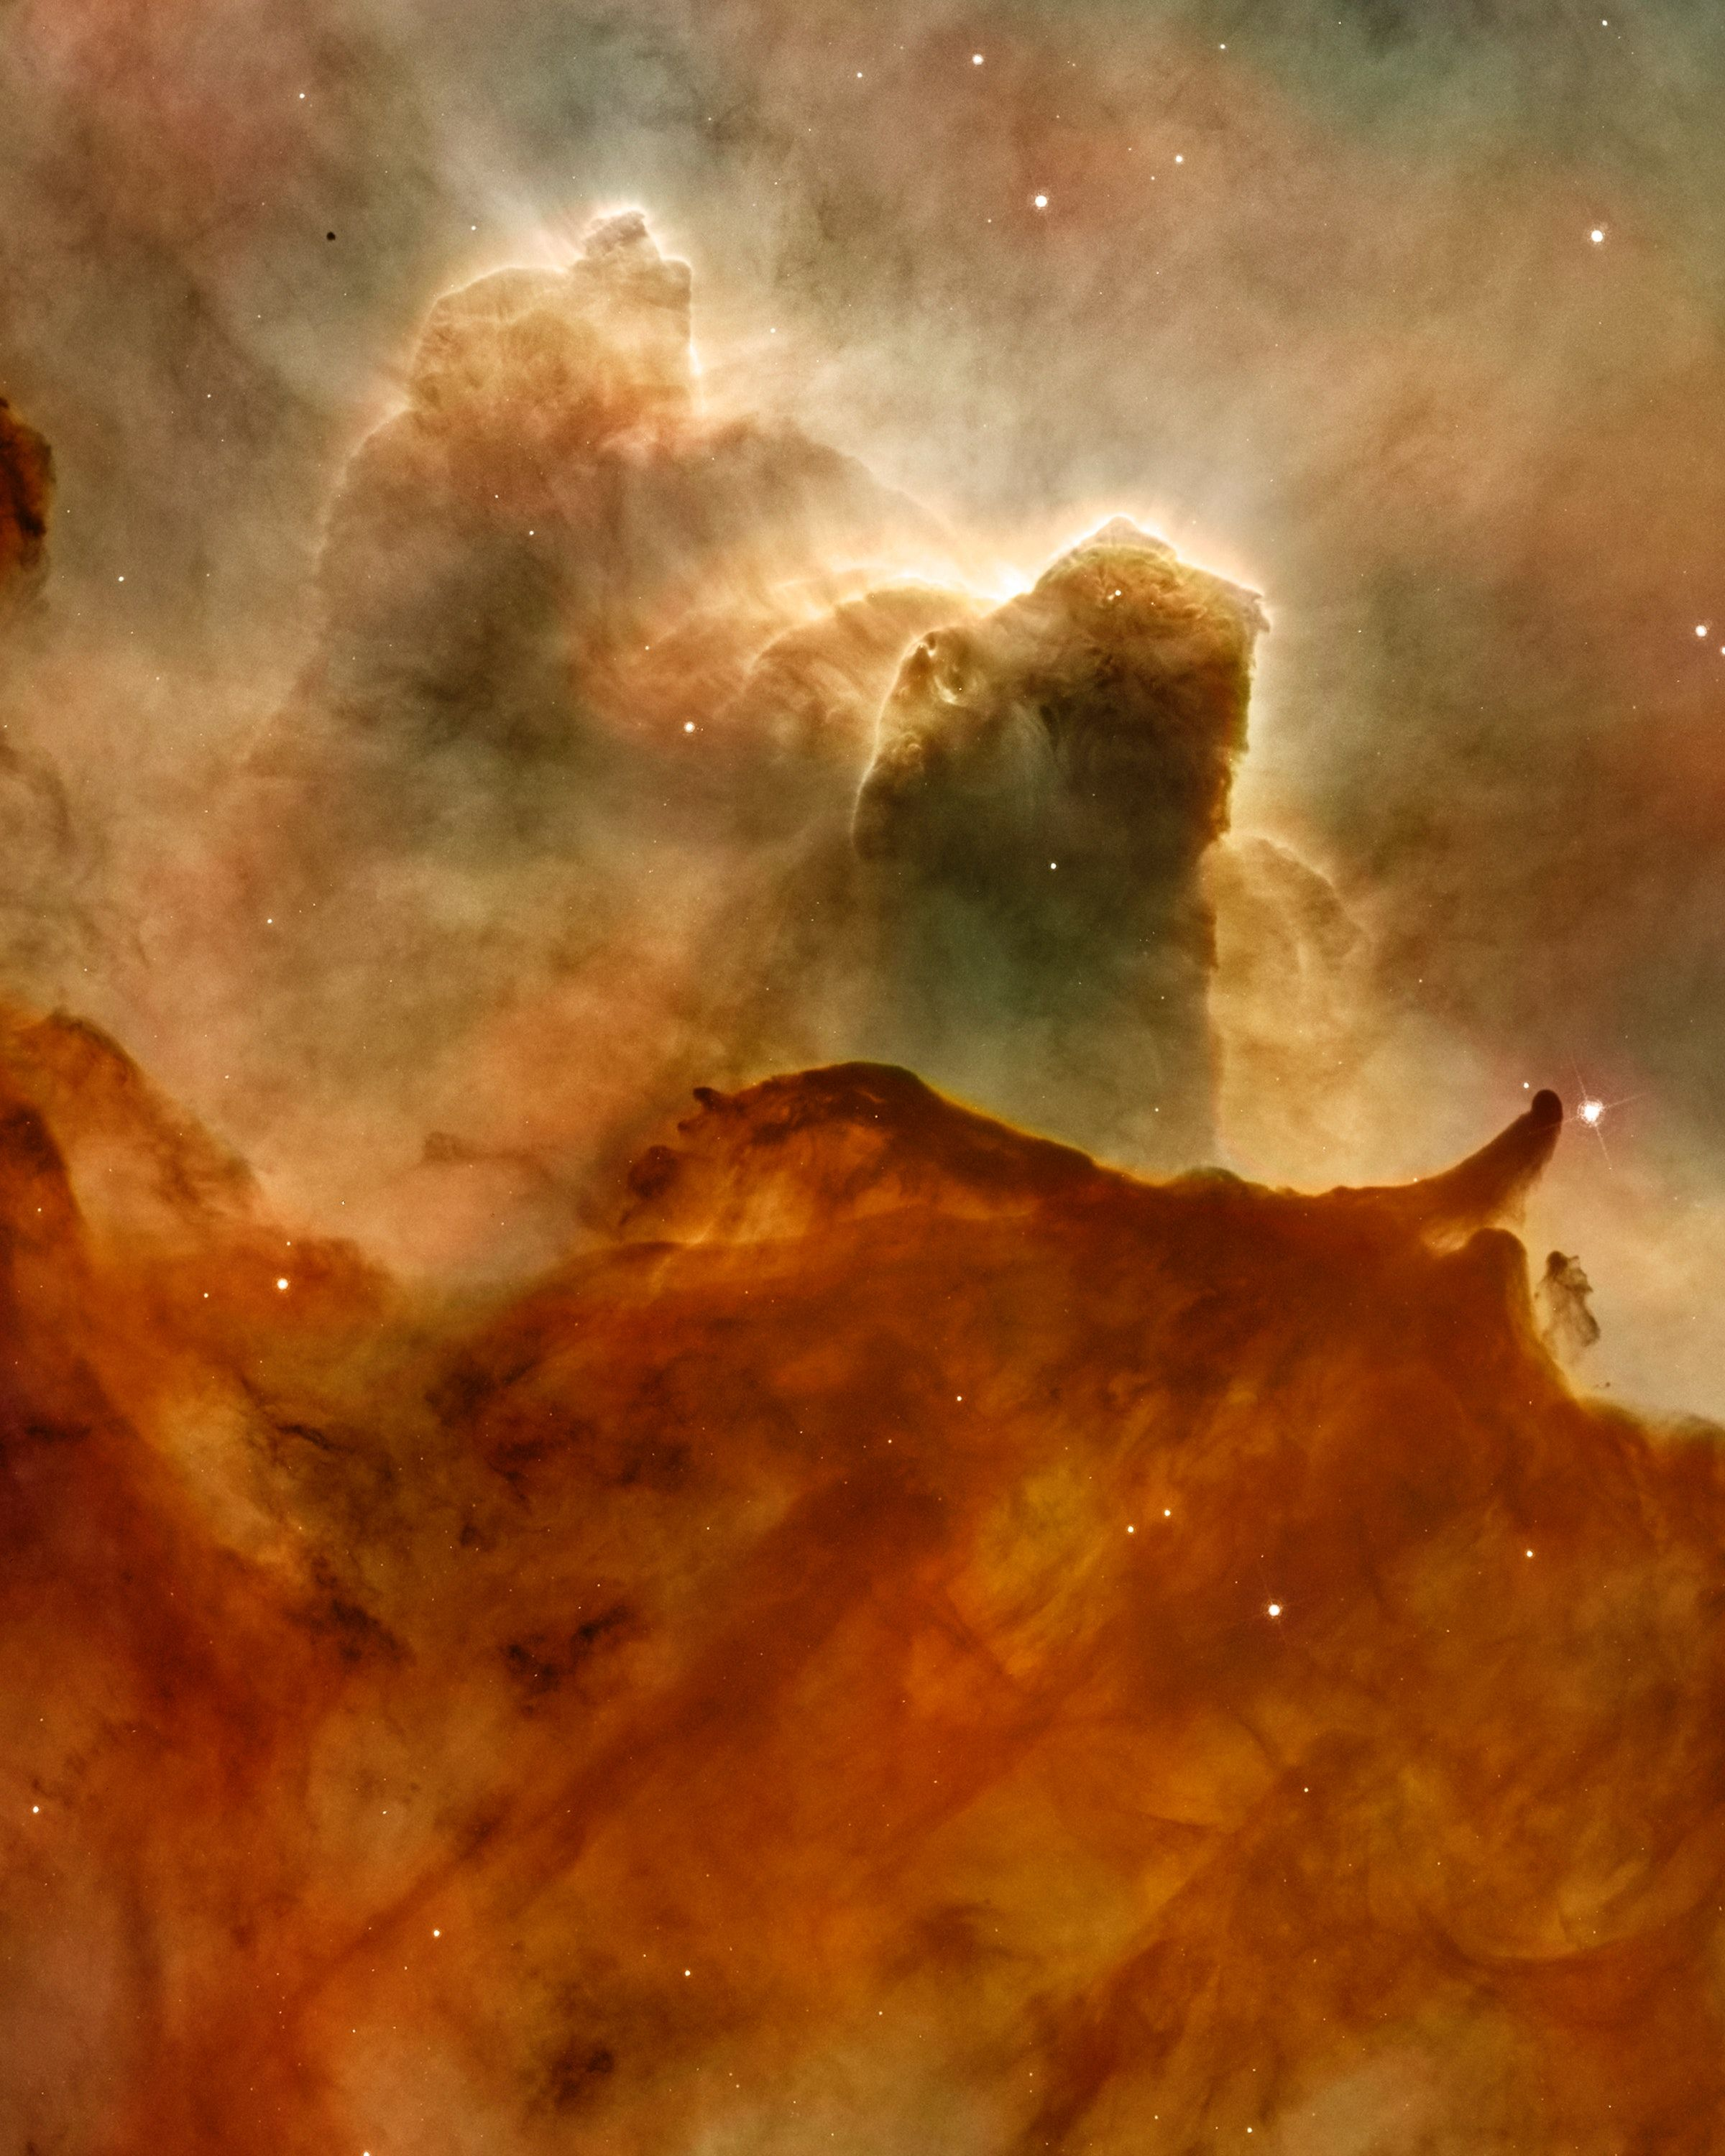 Space Astronomy Supernova Nebula Cosmo Star Wallpapers Hd 4k Background For Android Carina Nebula Nebula Clouds